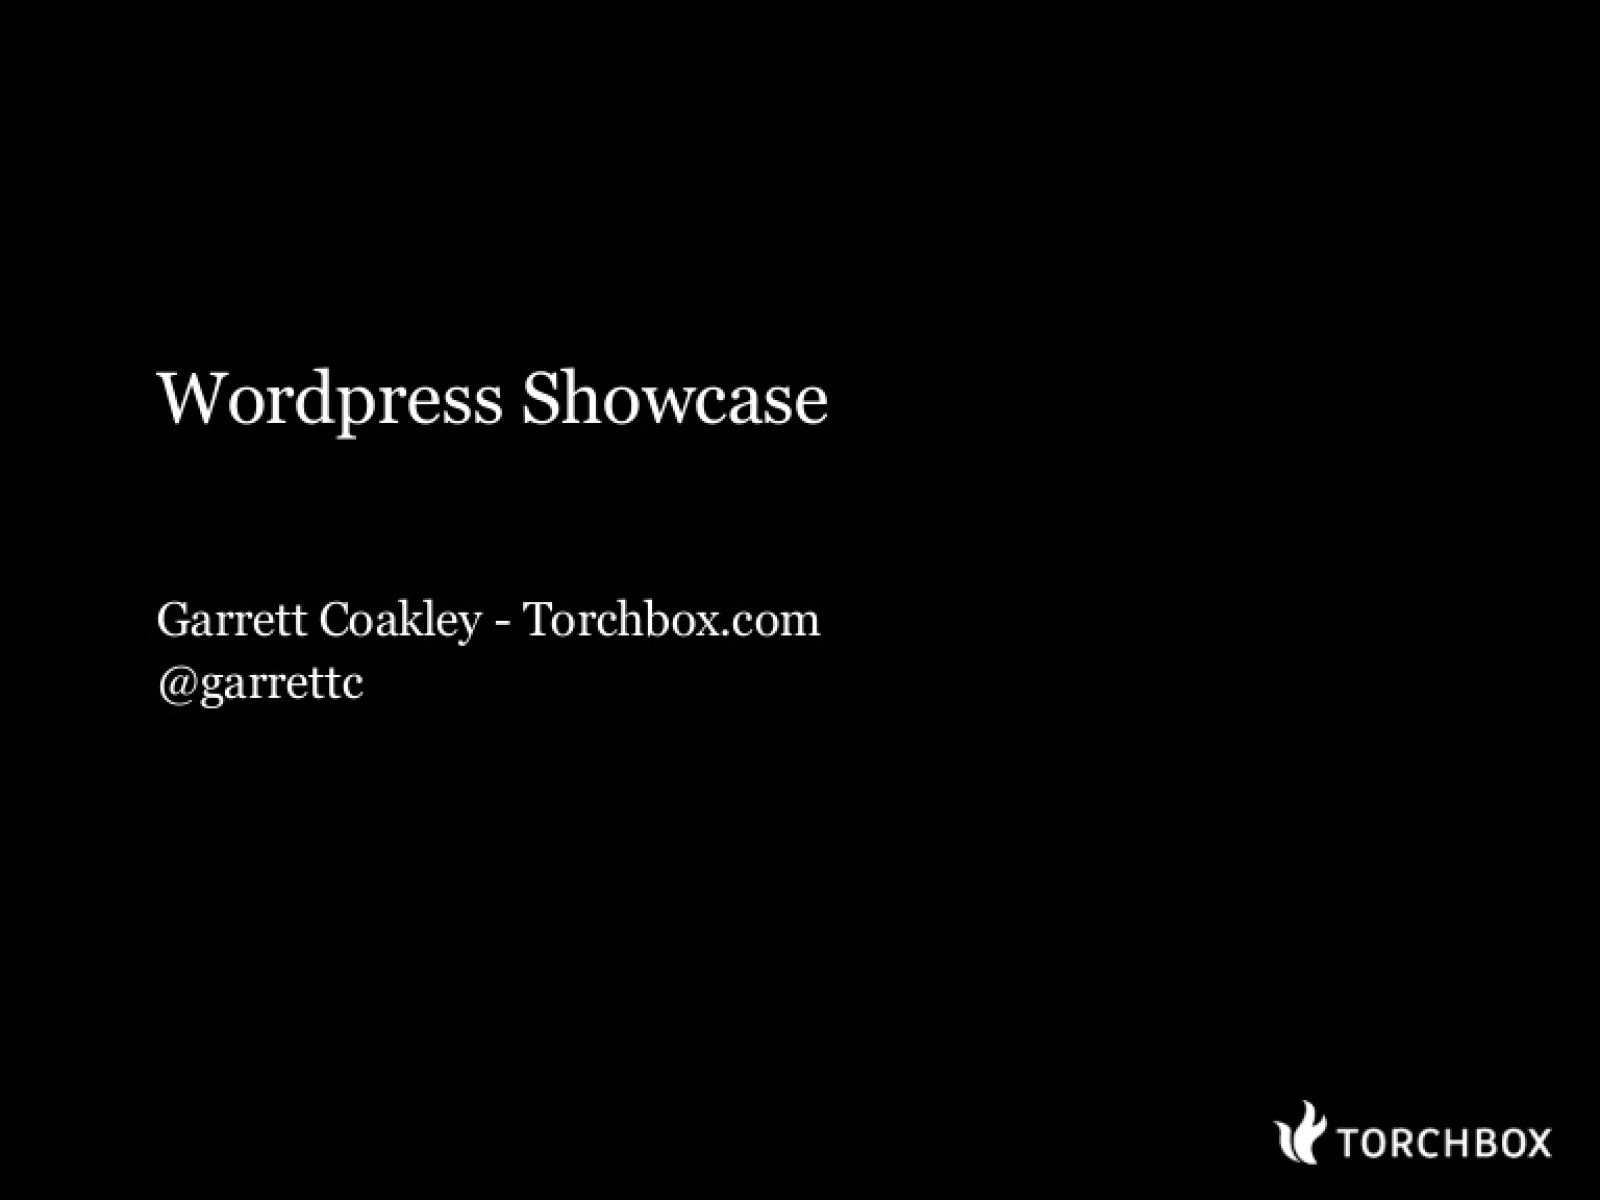 Wordpress Showcase